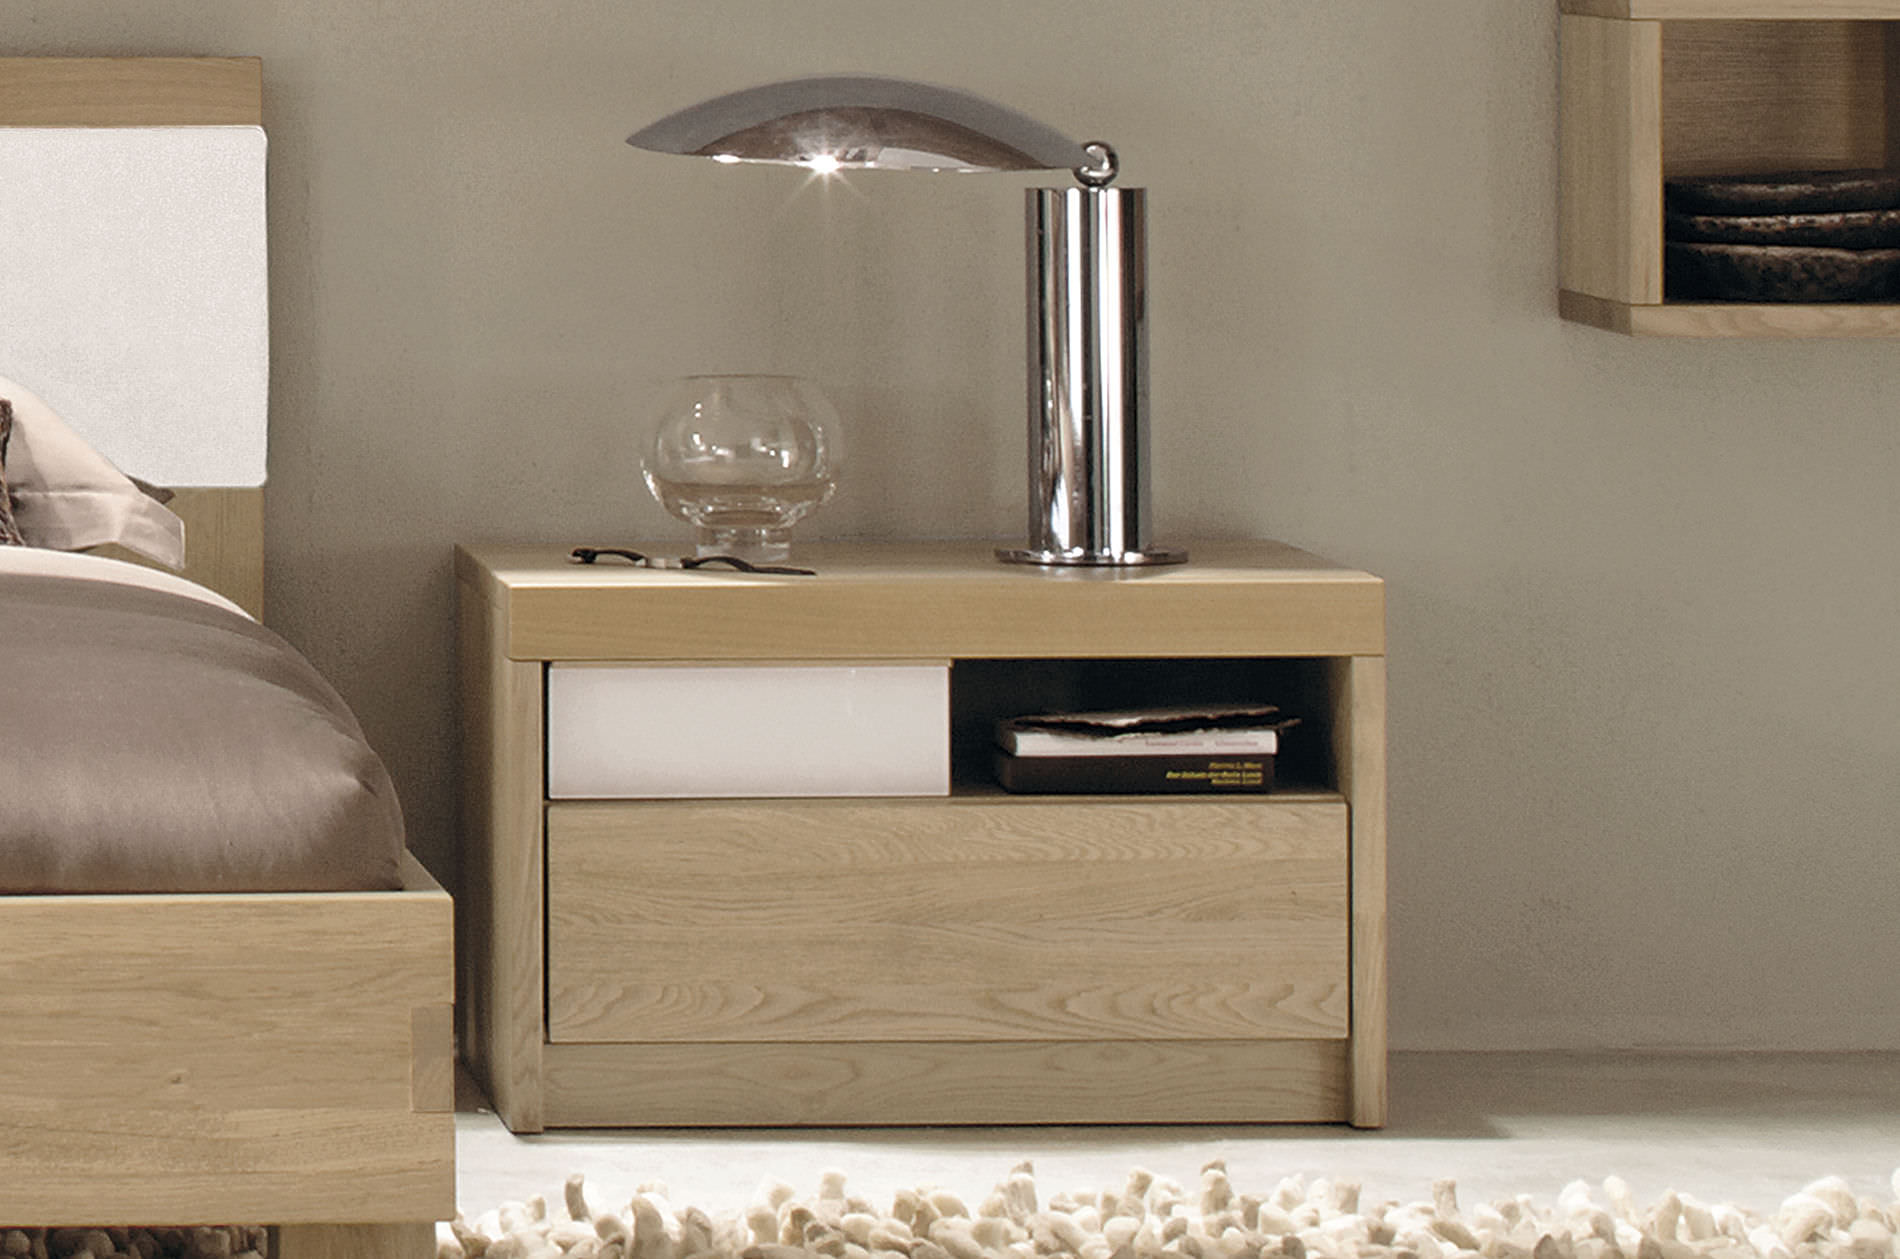 Importance of sidetable for beds